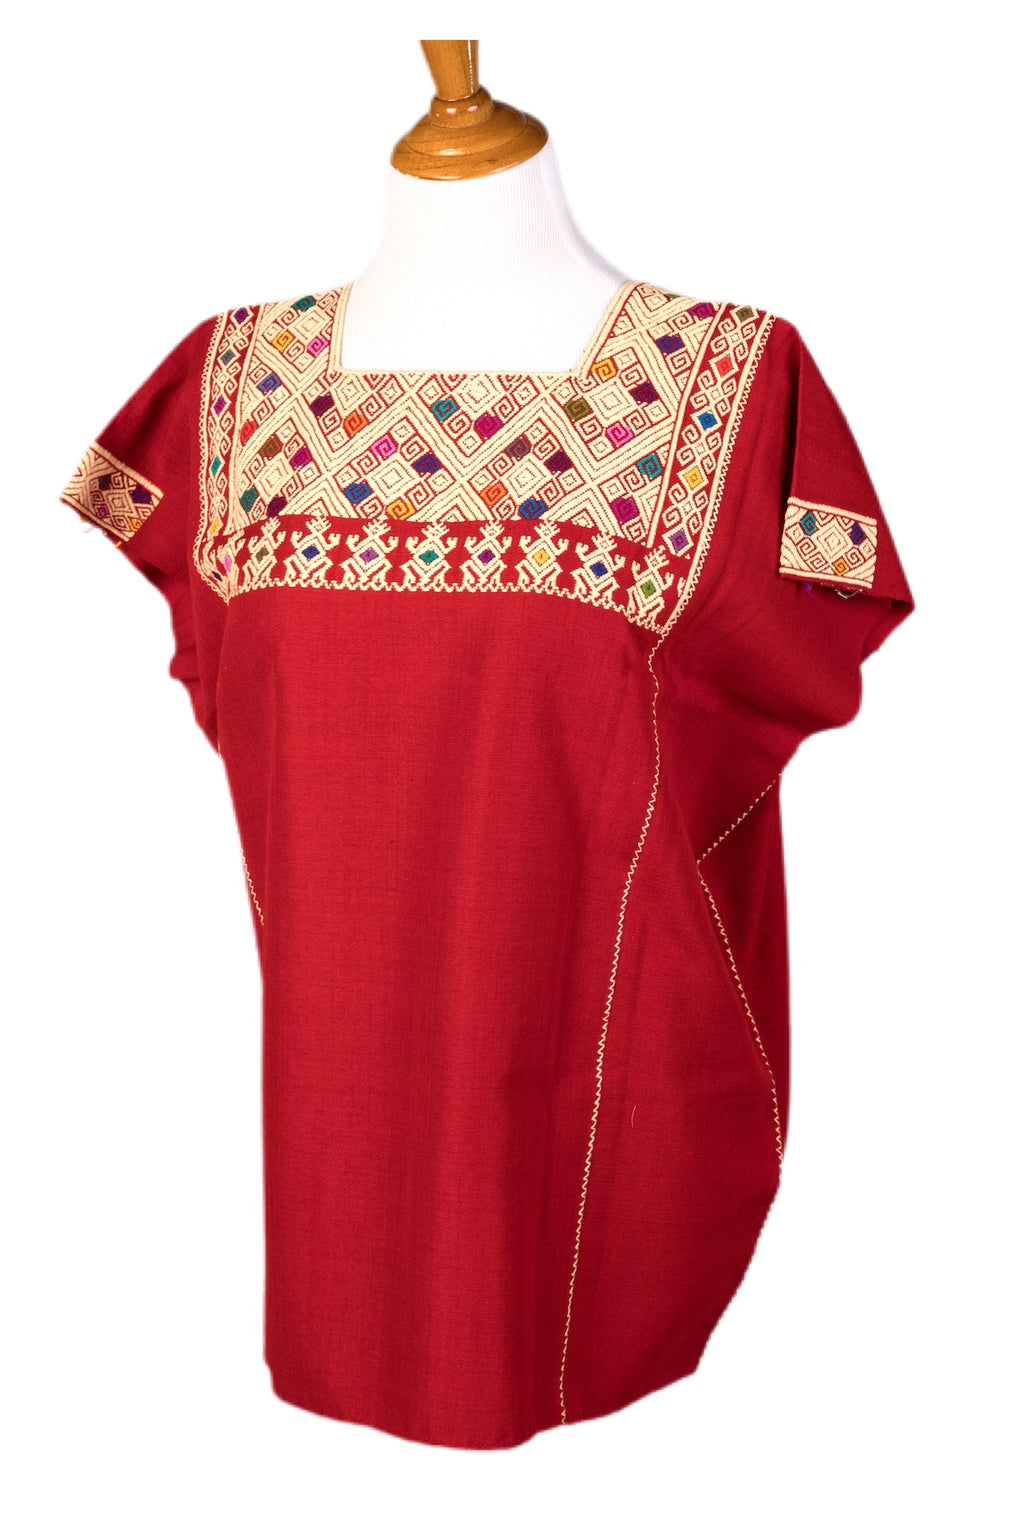 San Andres Mexican Blouse - Red